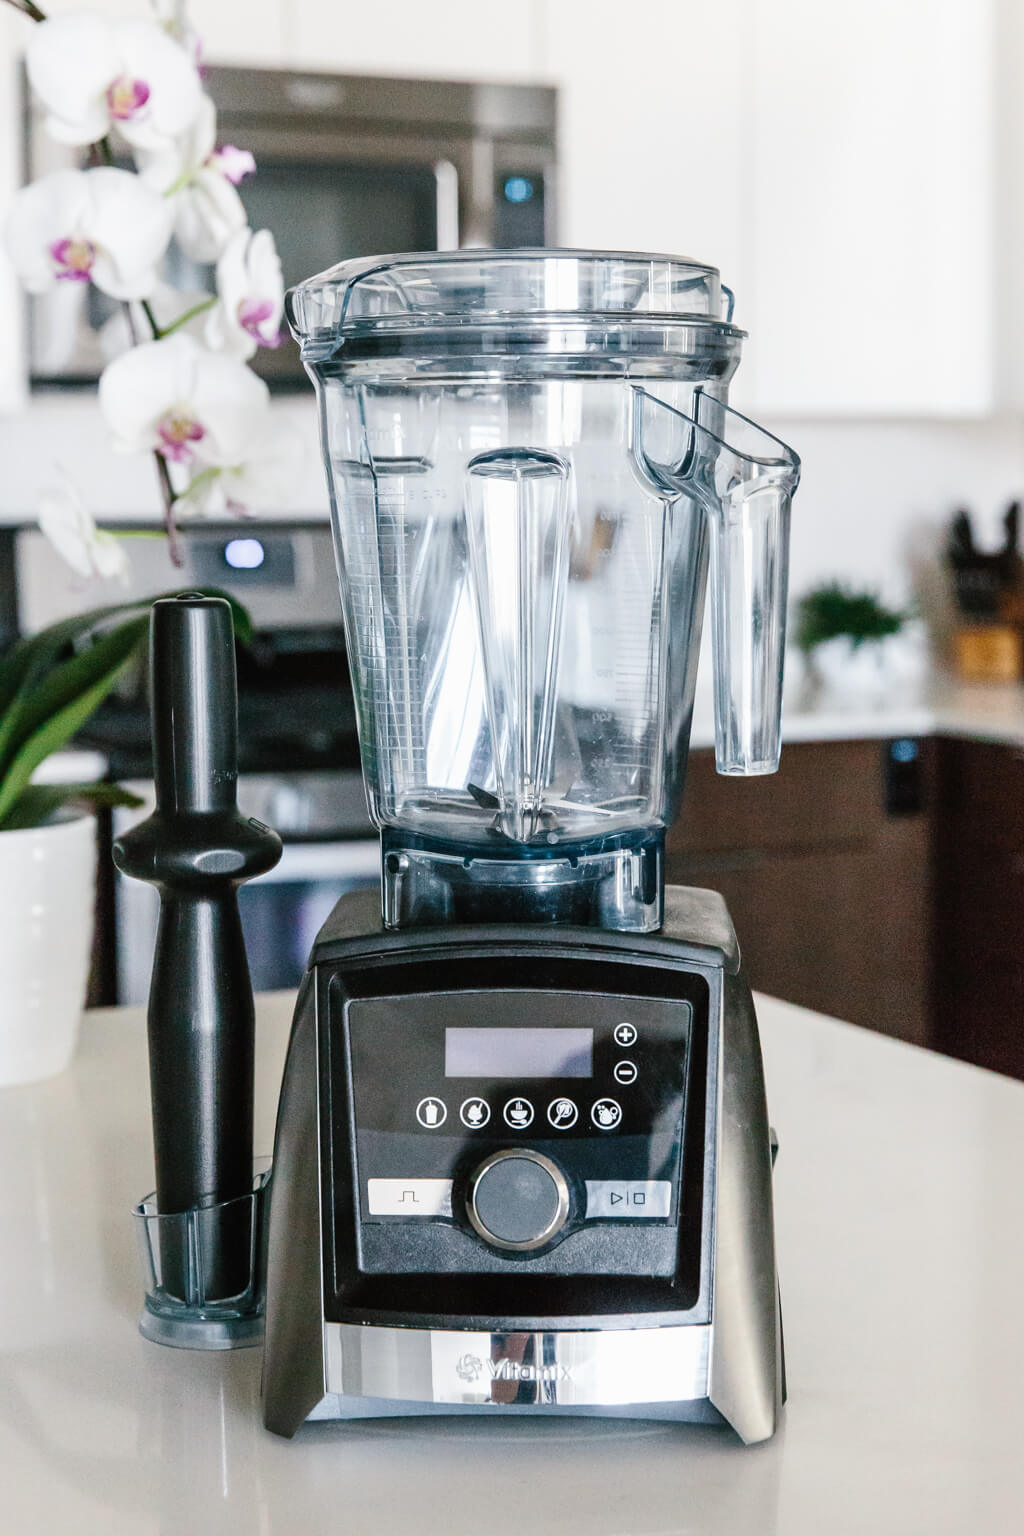 Vitamix blender sitting on a countertop.